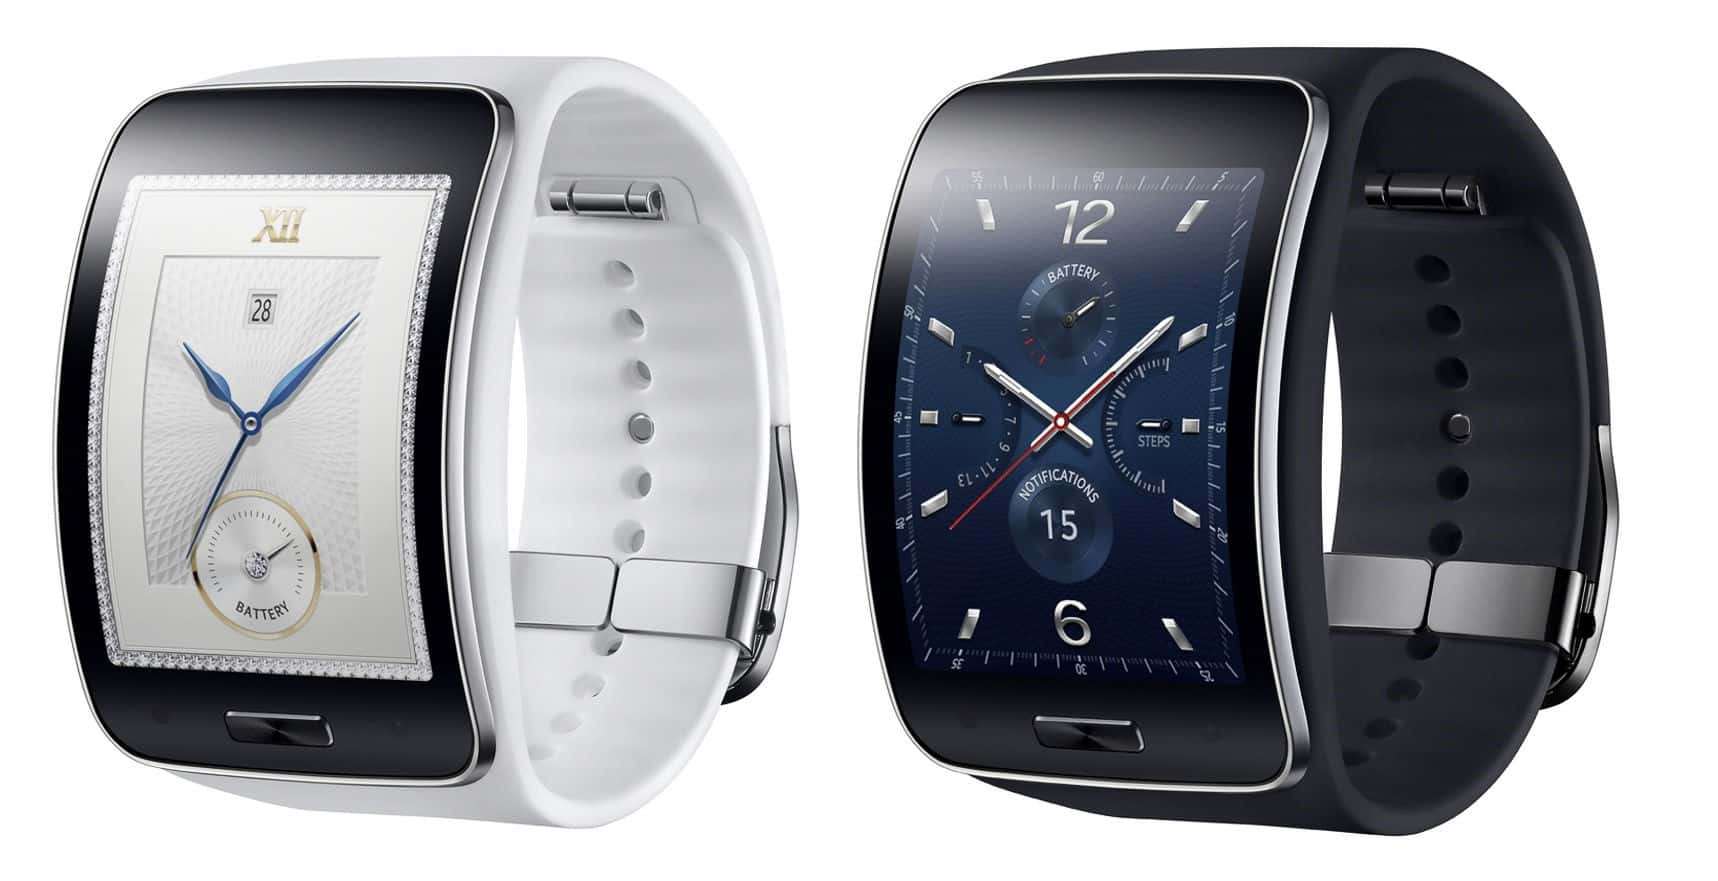 Samsung Galaxy S Smartwatch with Curved Screens ...